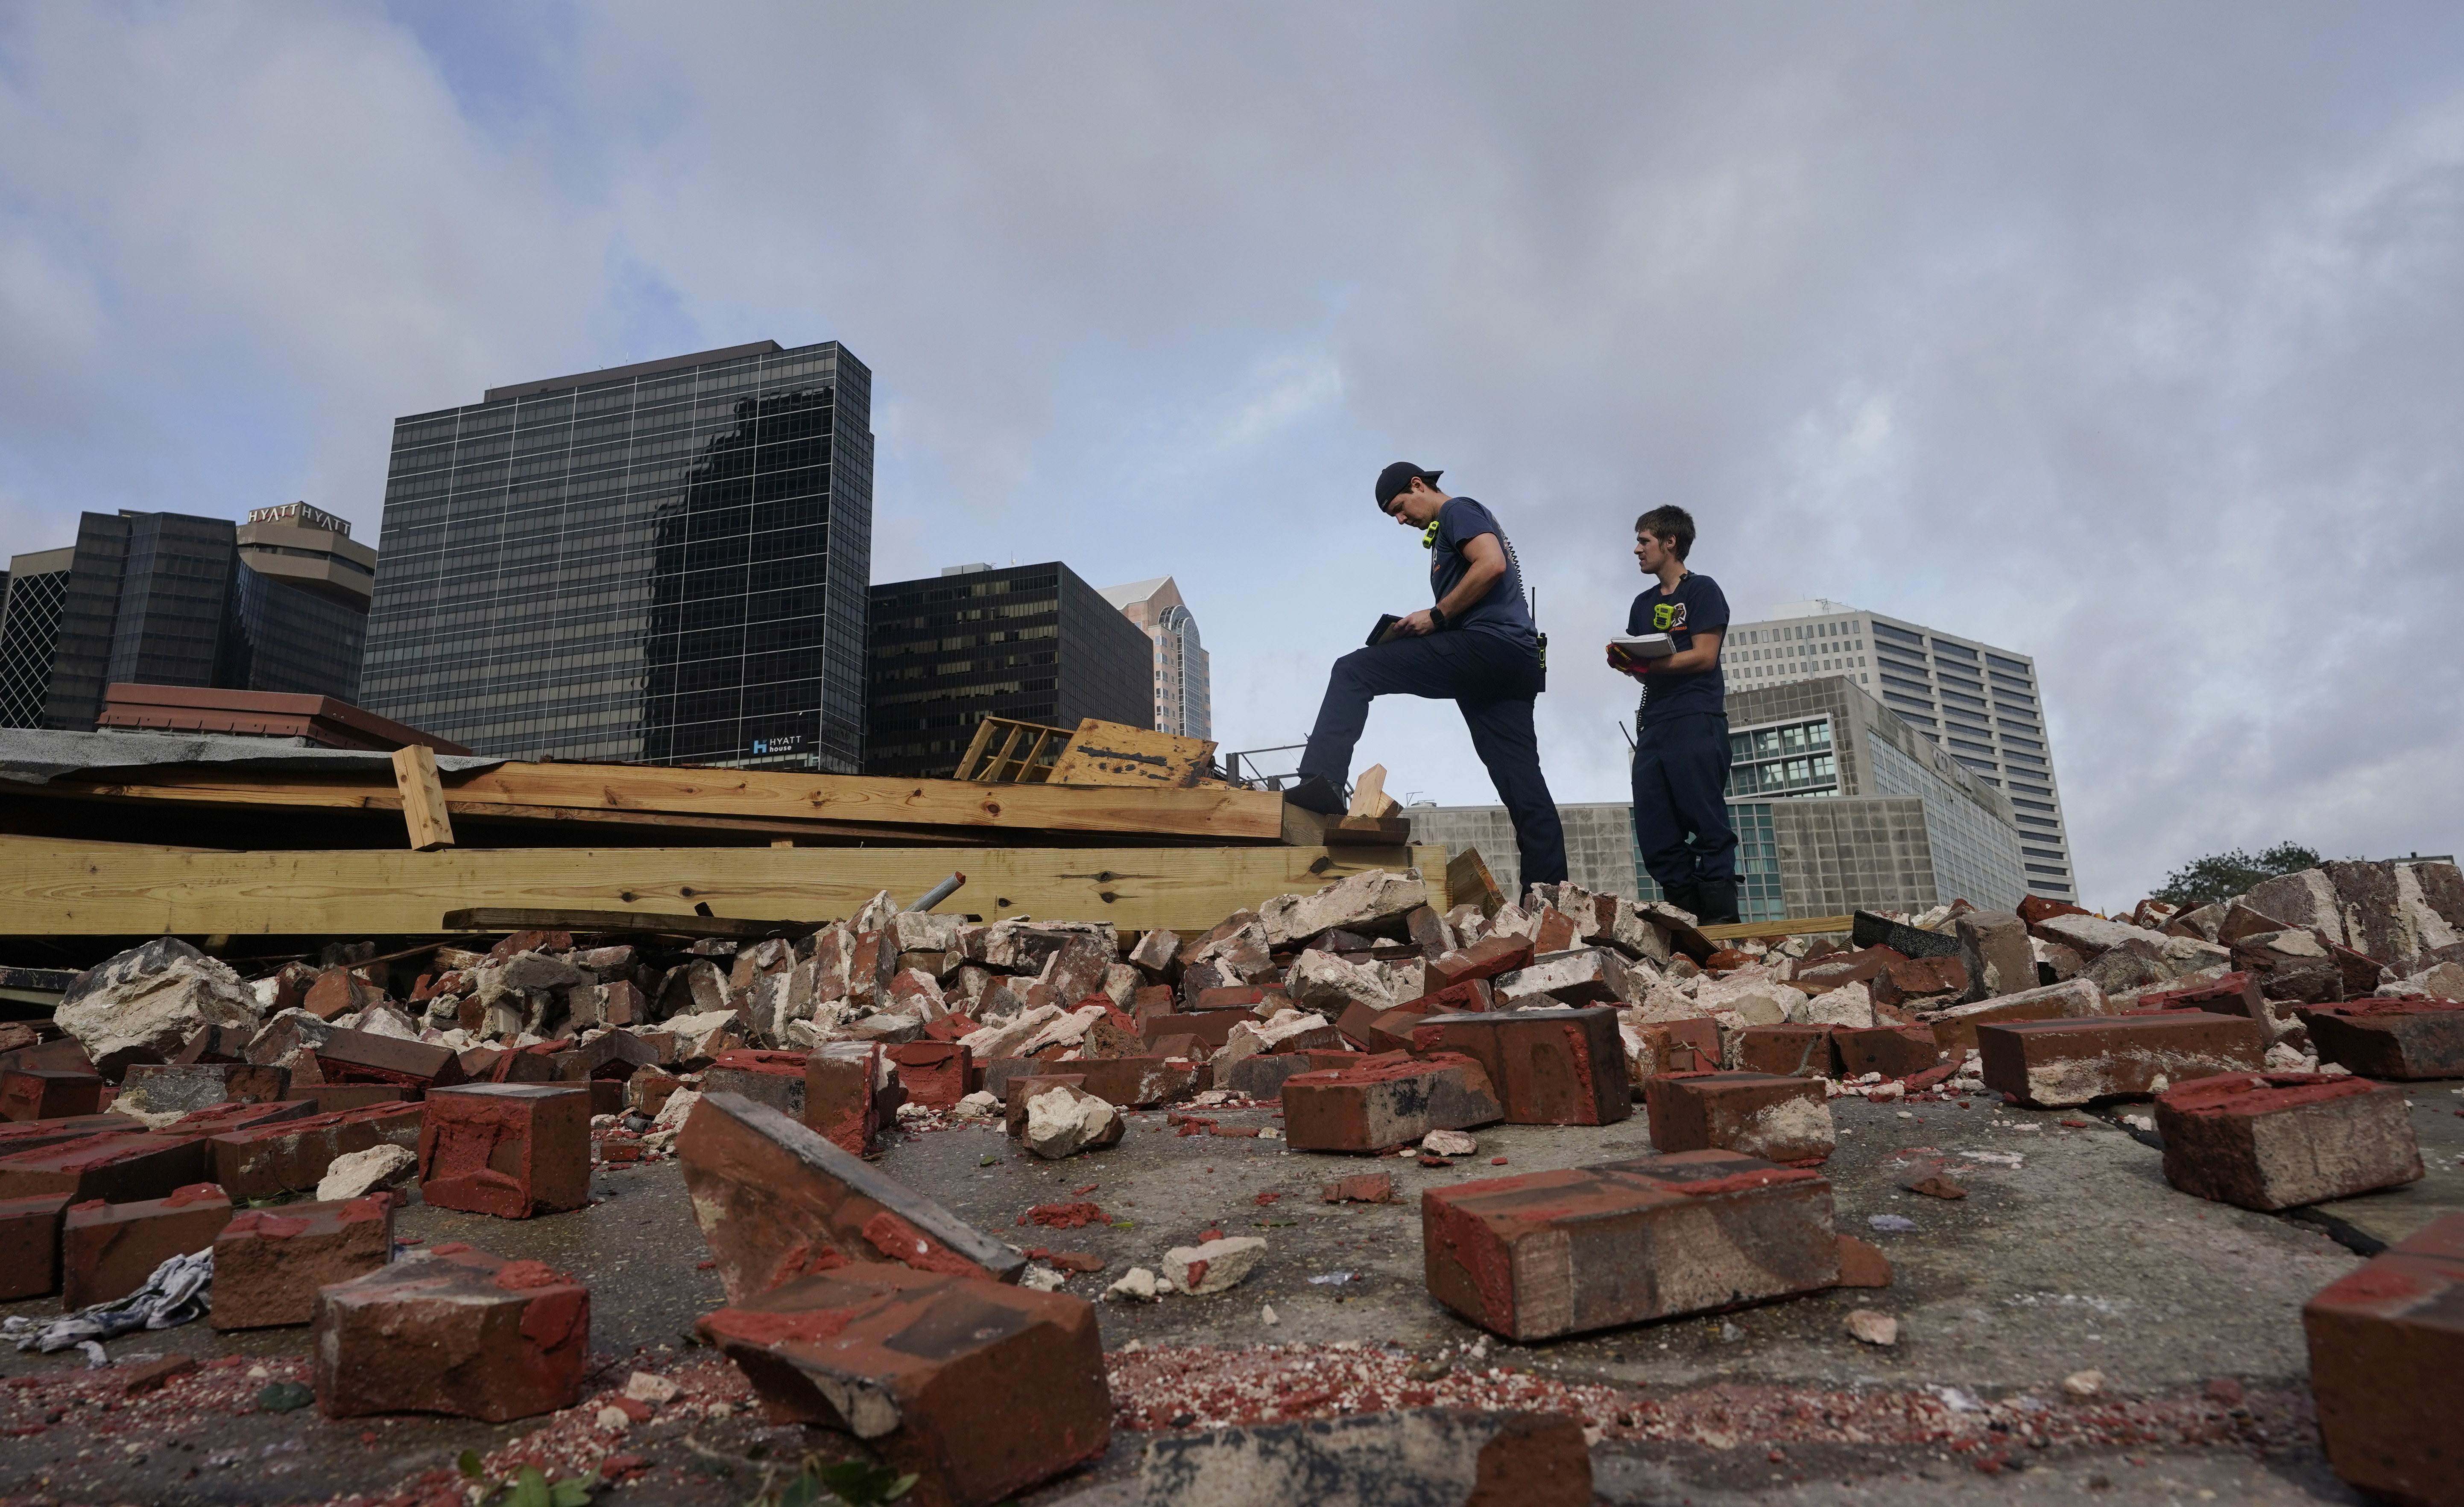 New Orleans firefighters assess damage after a building collapsed from the effects of Hurricane Ida, in New Orleans, La.